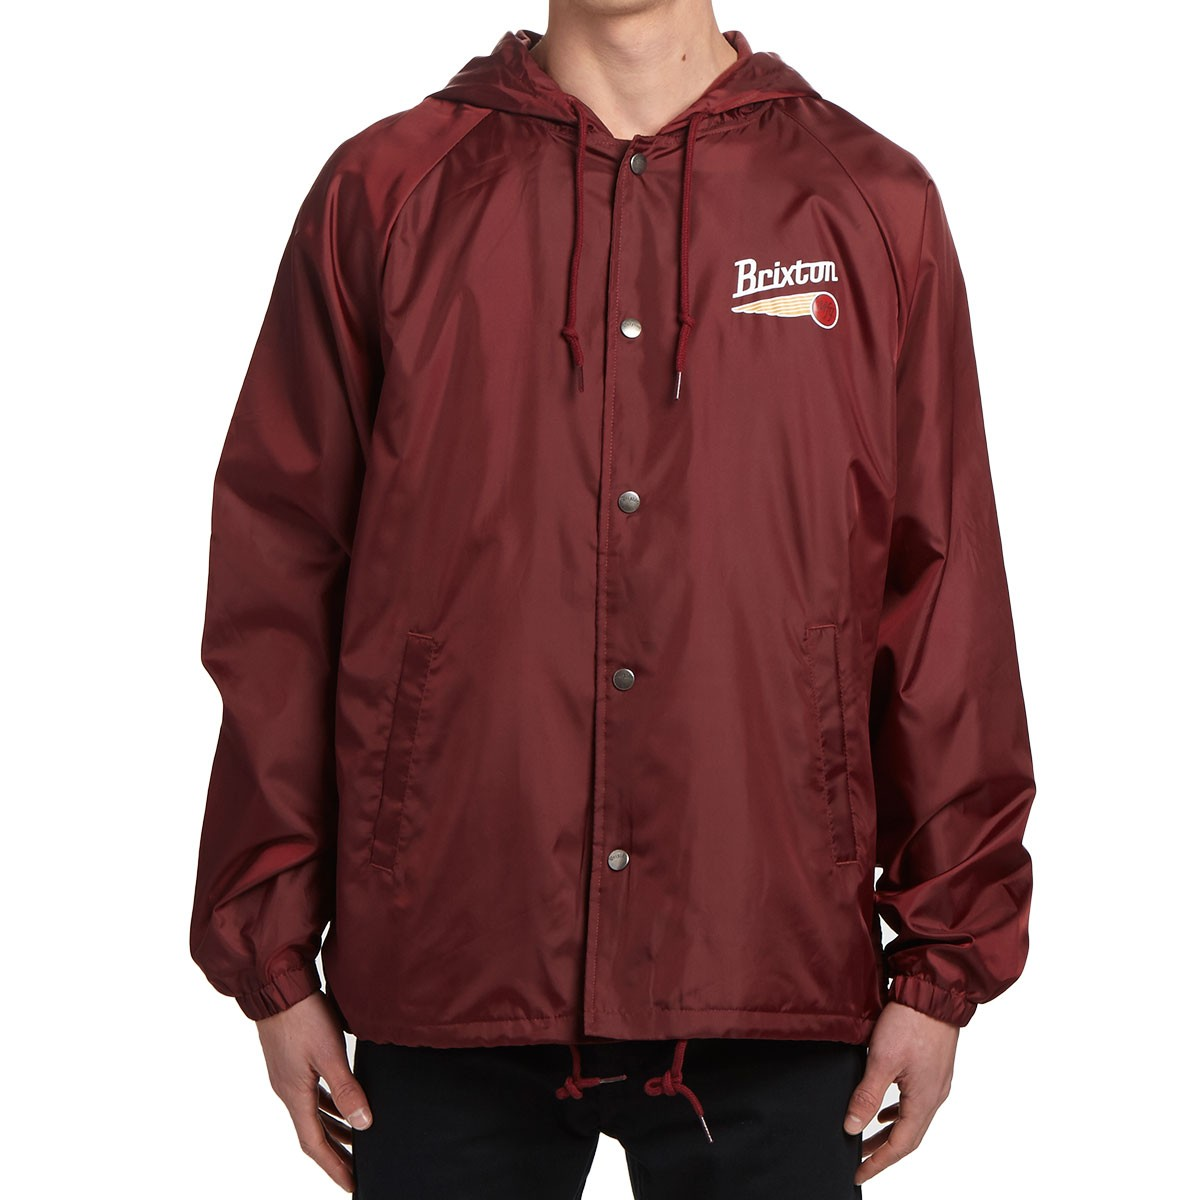 38c1bfb64f4d Brixton Maverick Windbreaker Jacket - Burgundy